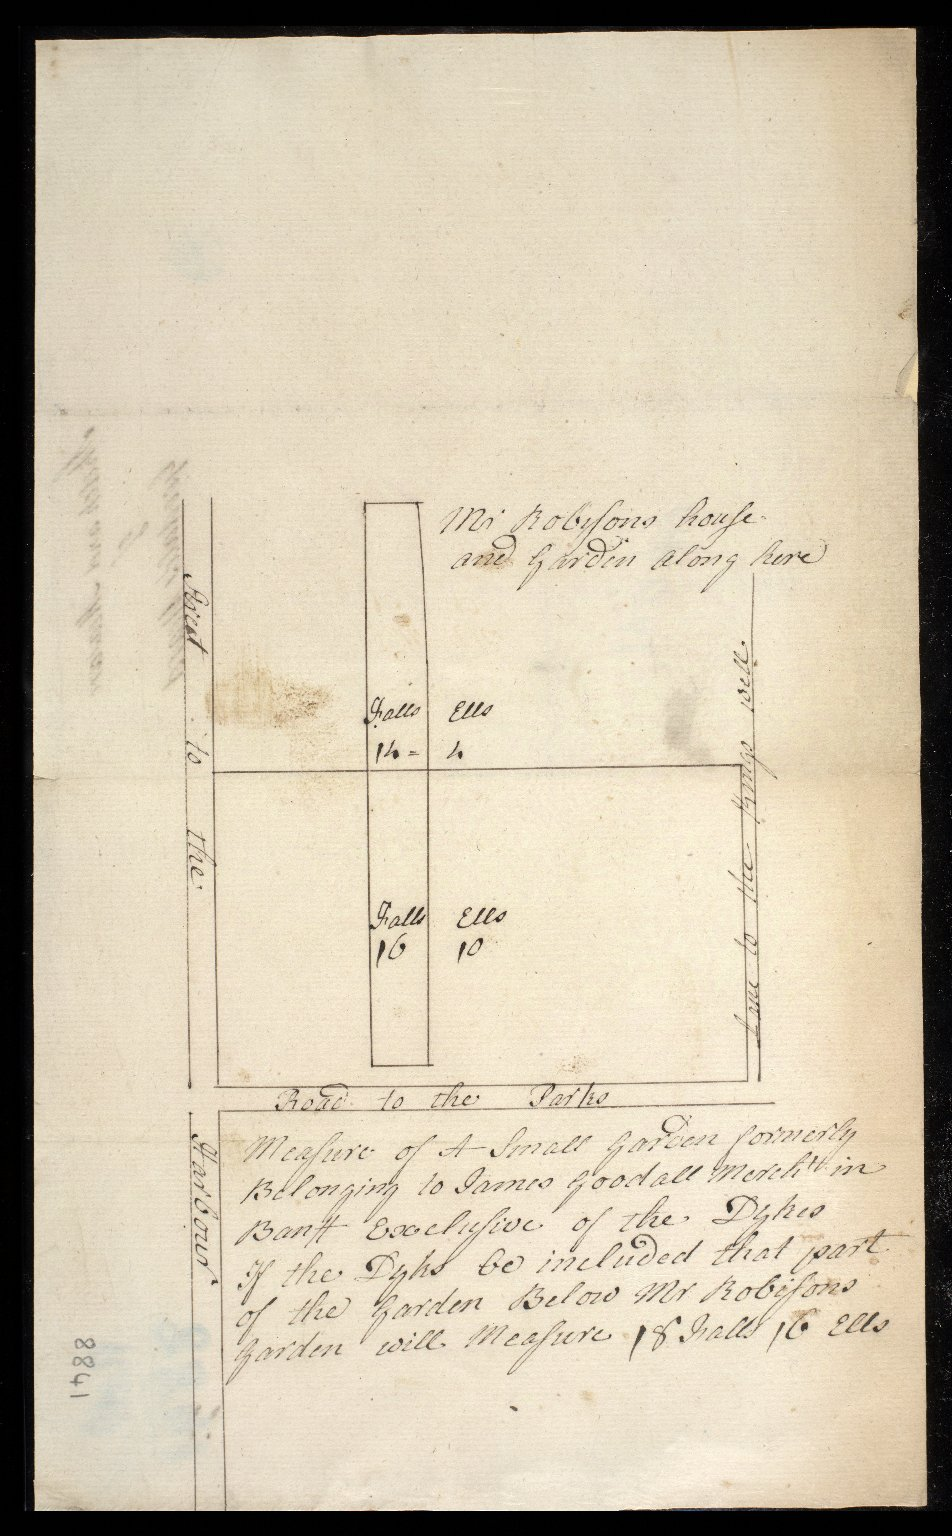 Sketch and Measure of Goodall's yard [1 of 1]